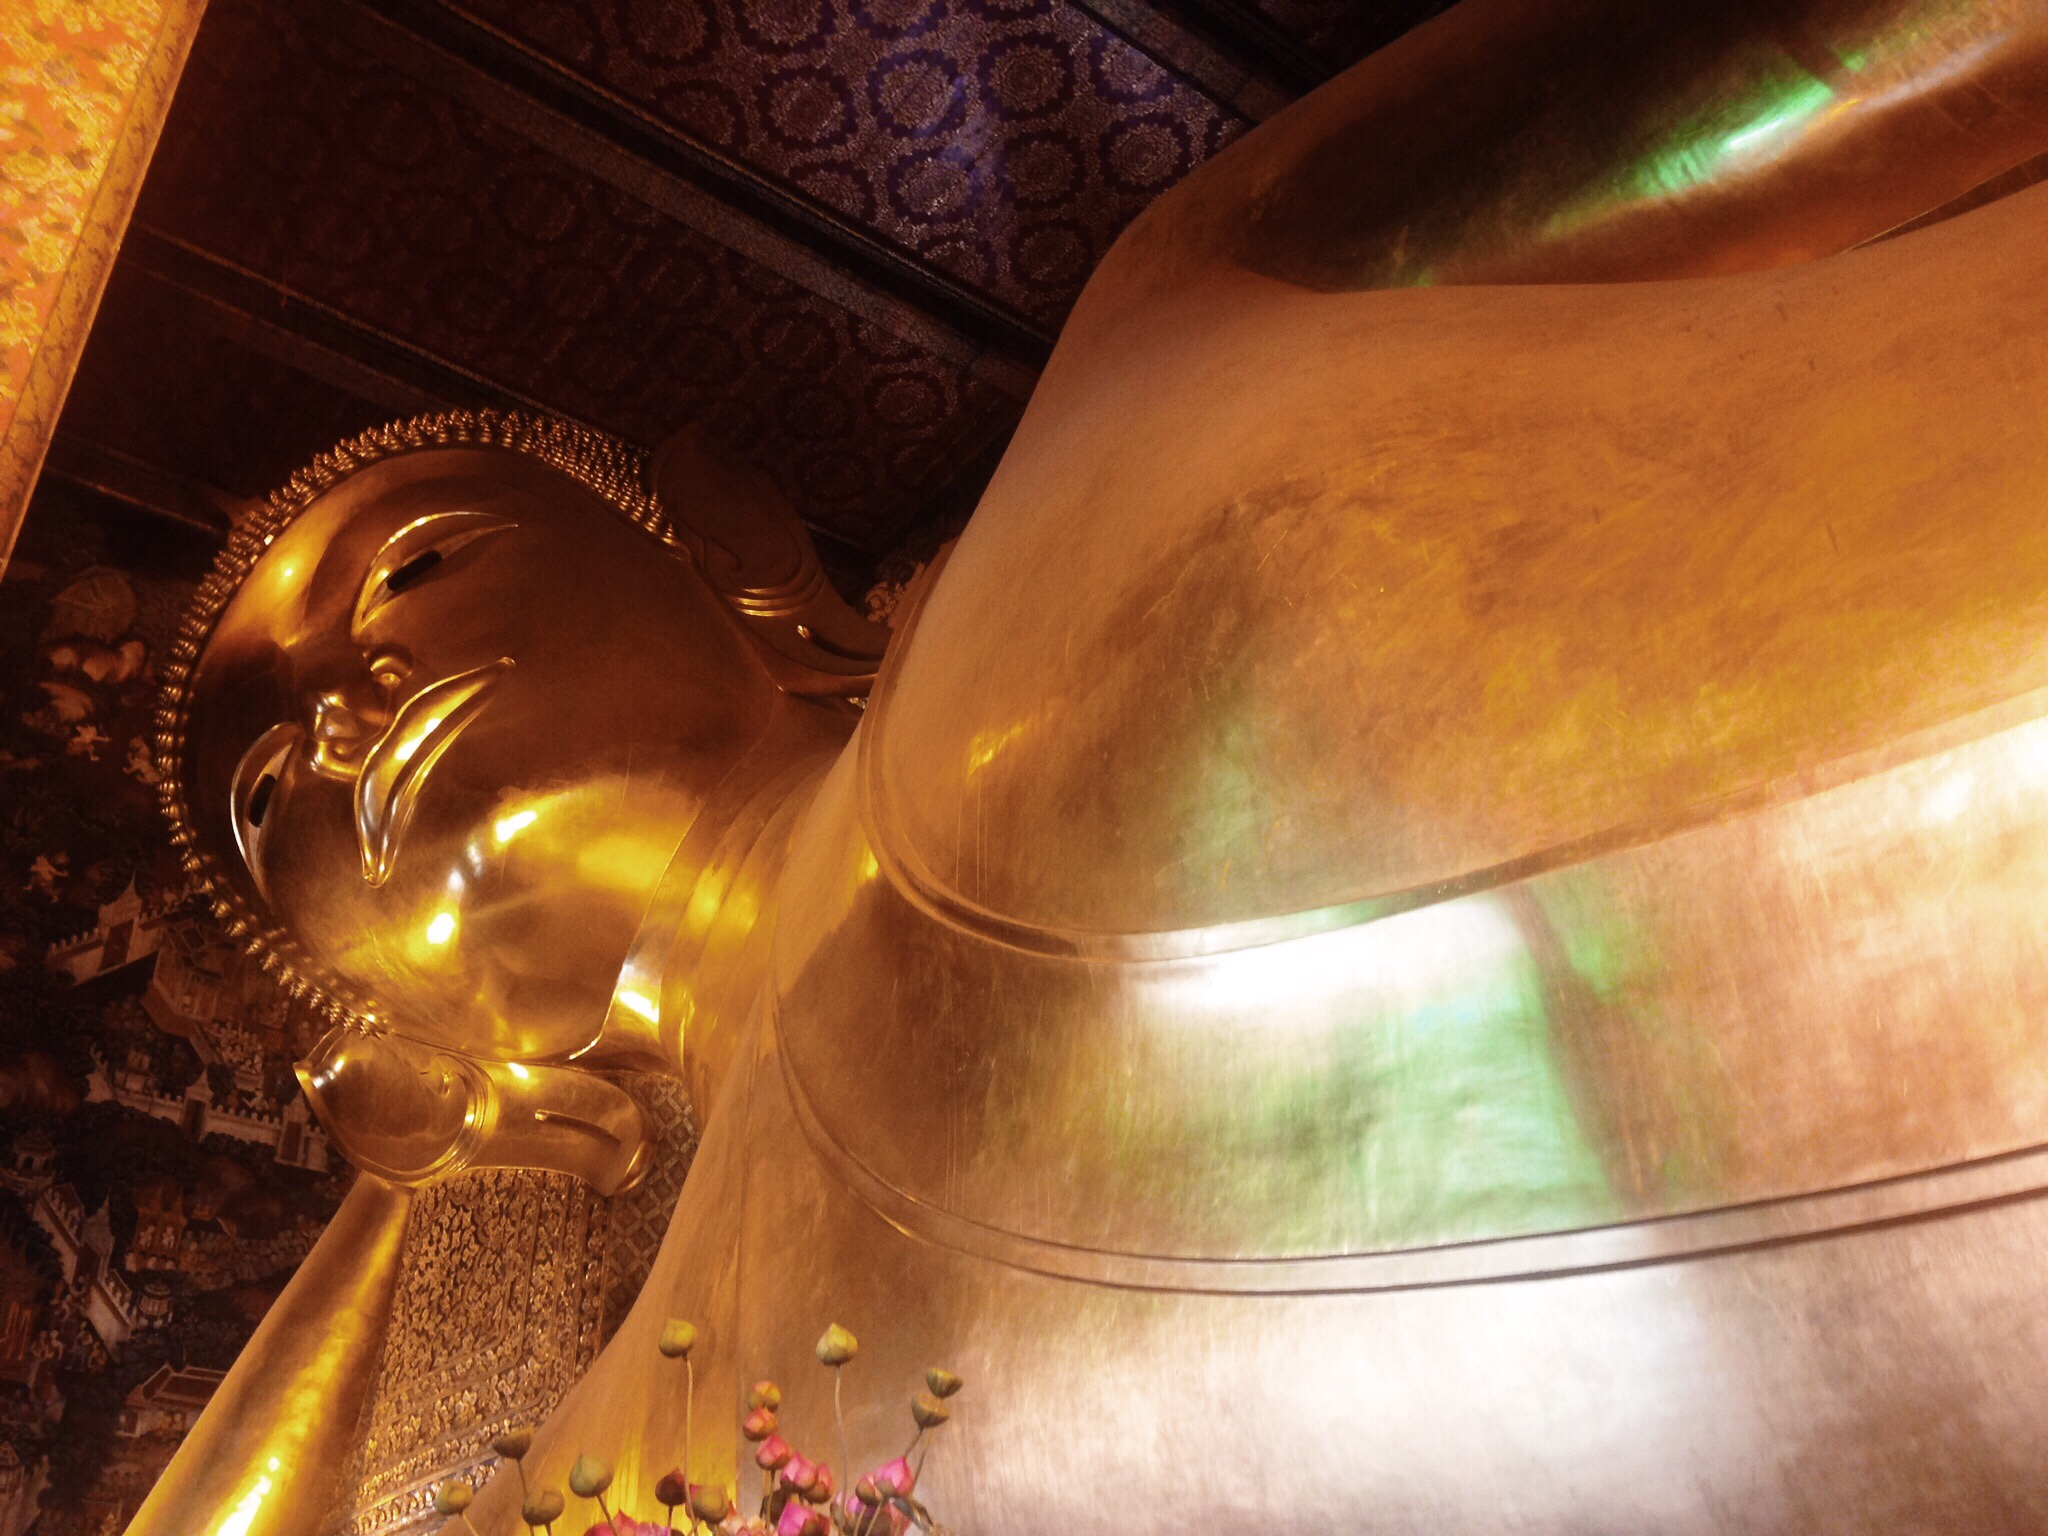 Image of Wat Pho in Thailand